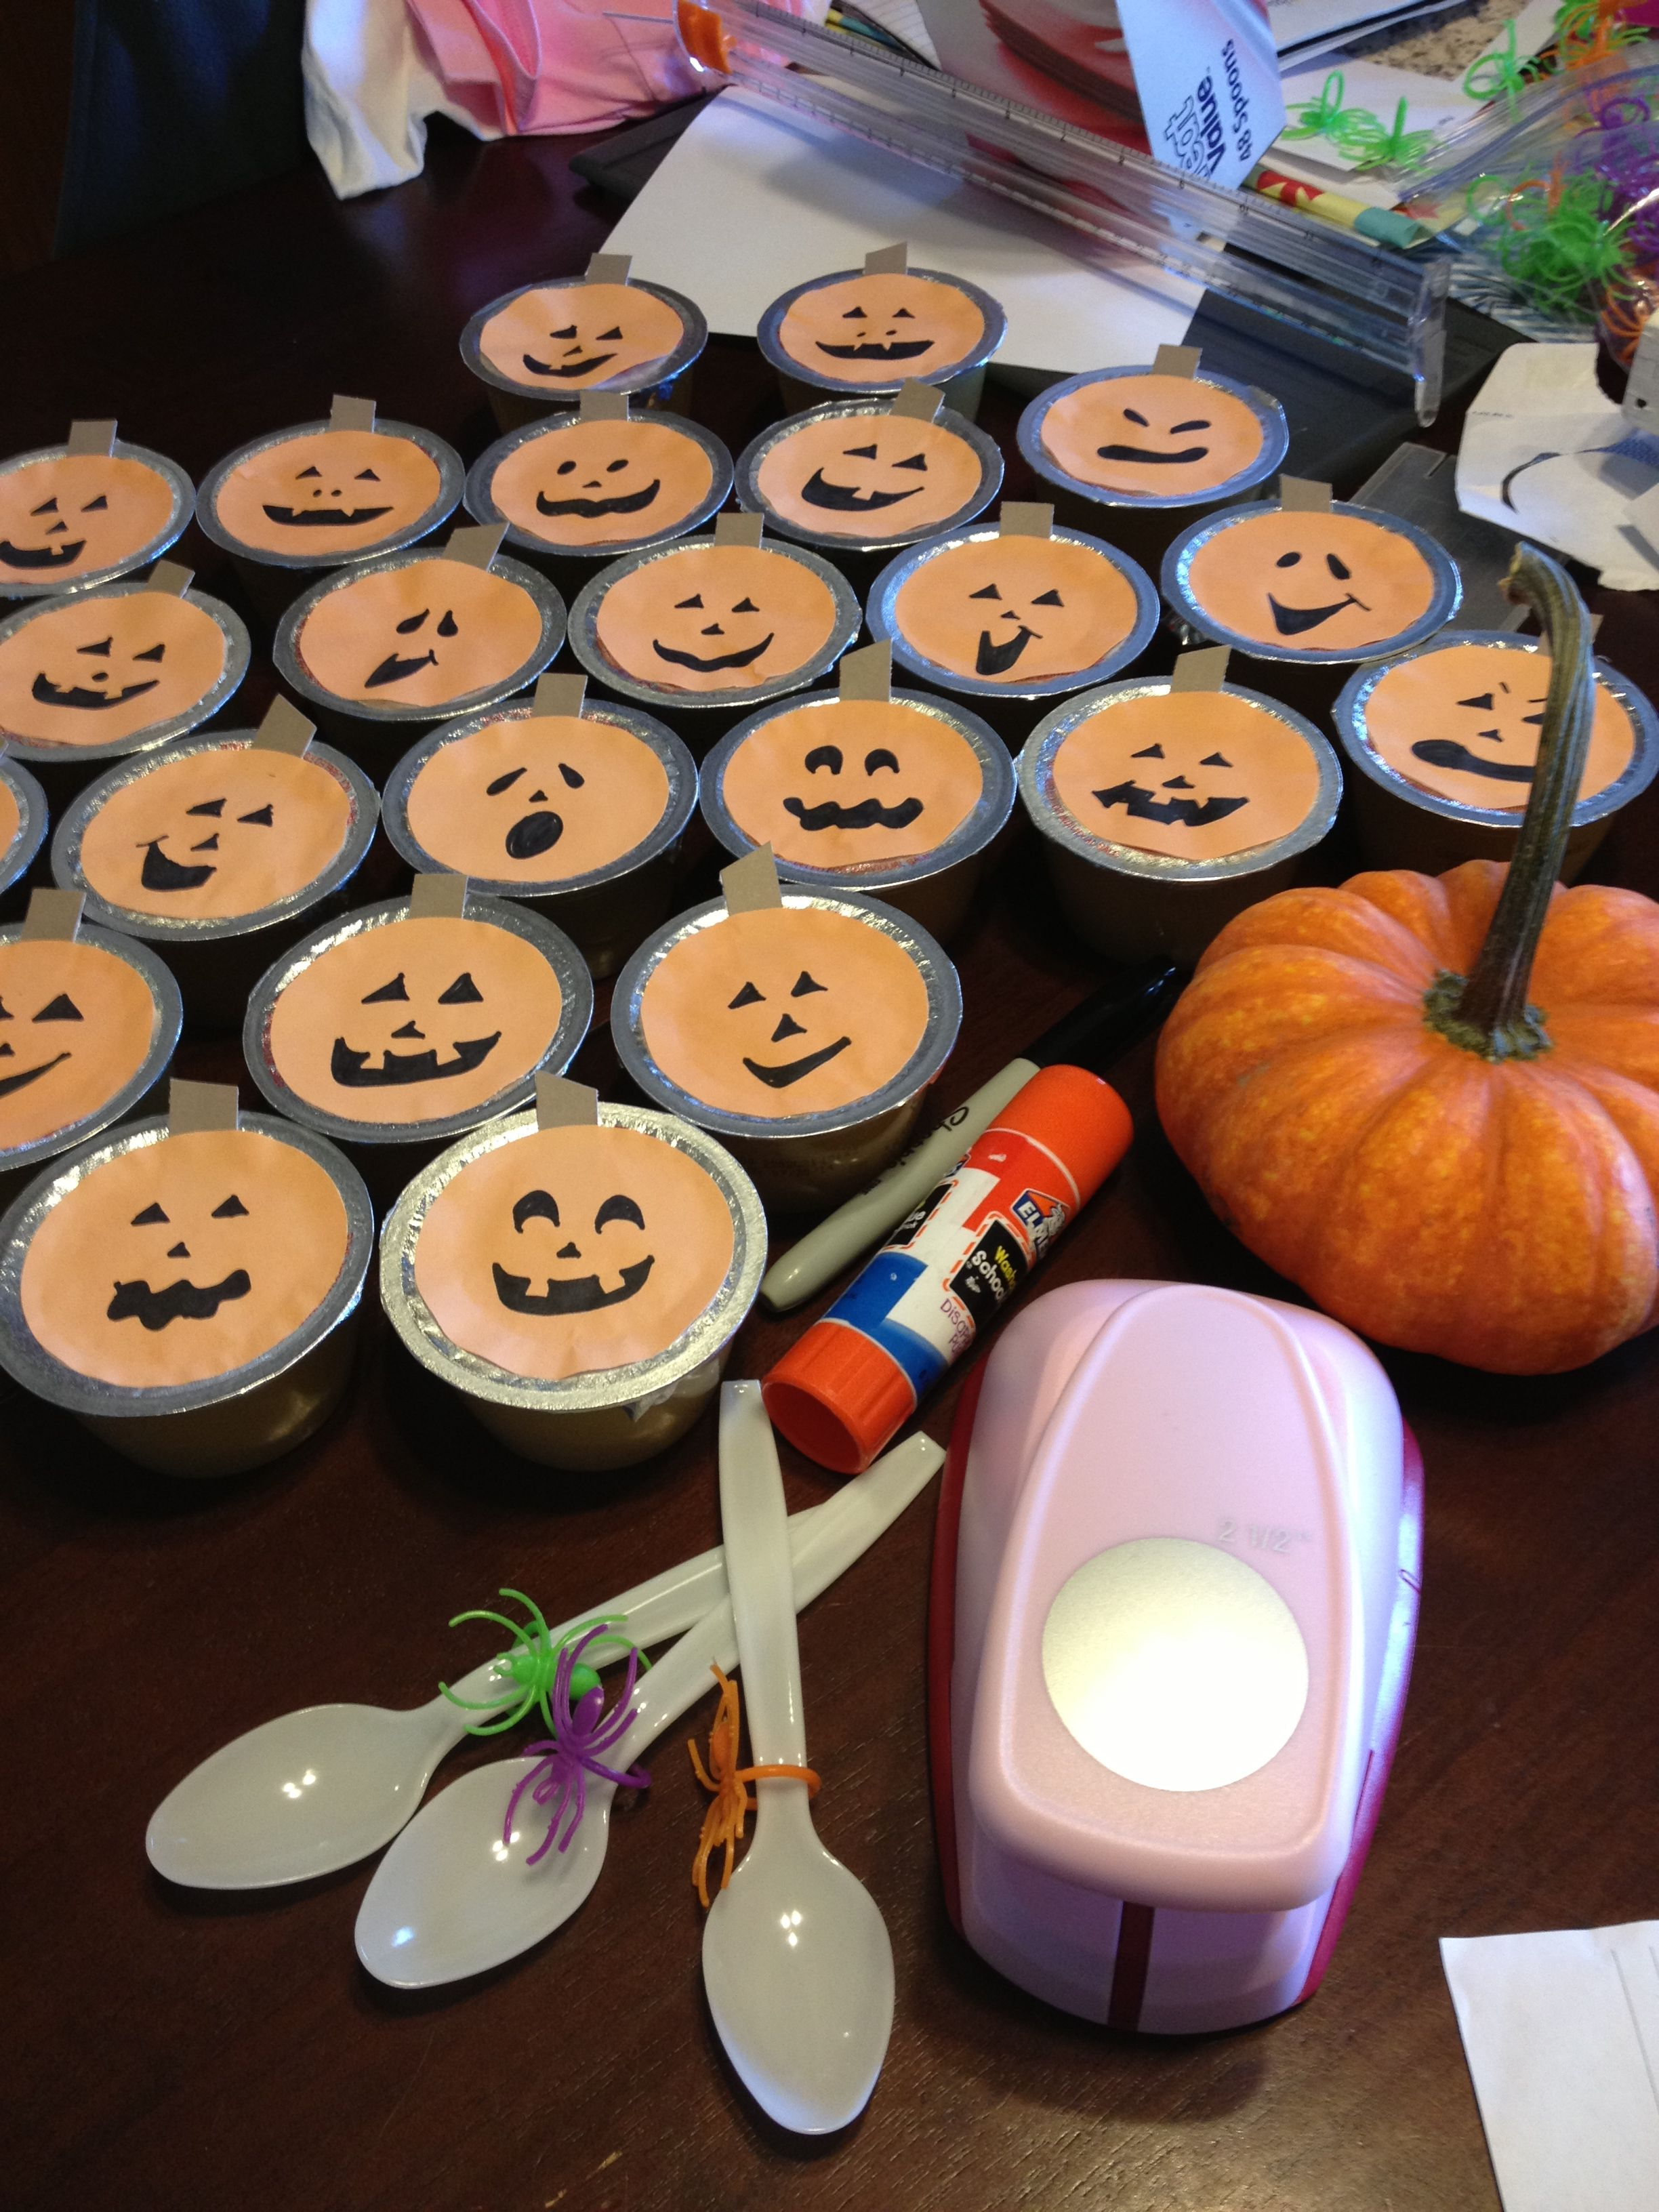 Decorate Applesauce Or Fruit Cups 2 1 2 Hole Punch On Orange Paper